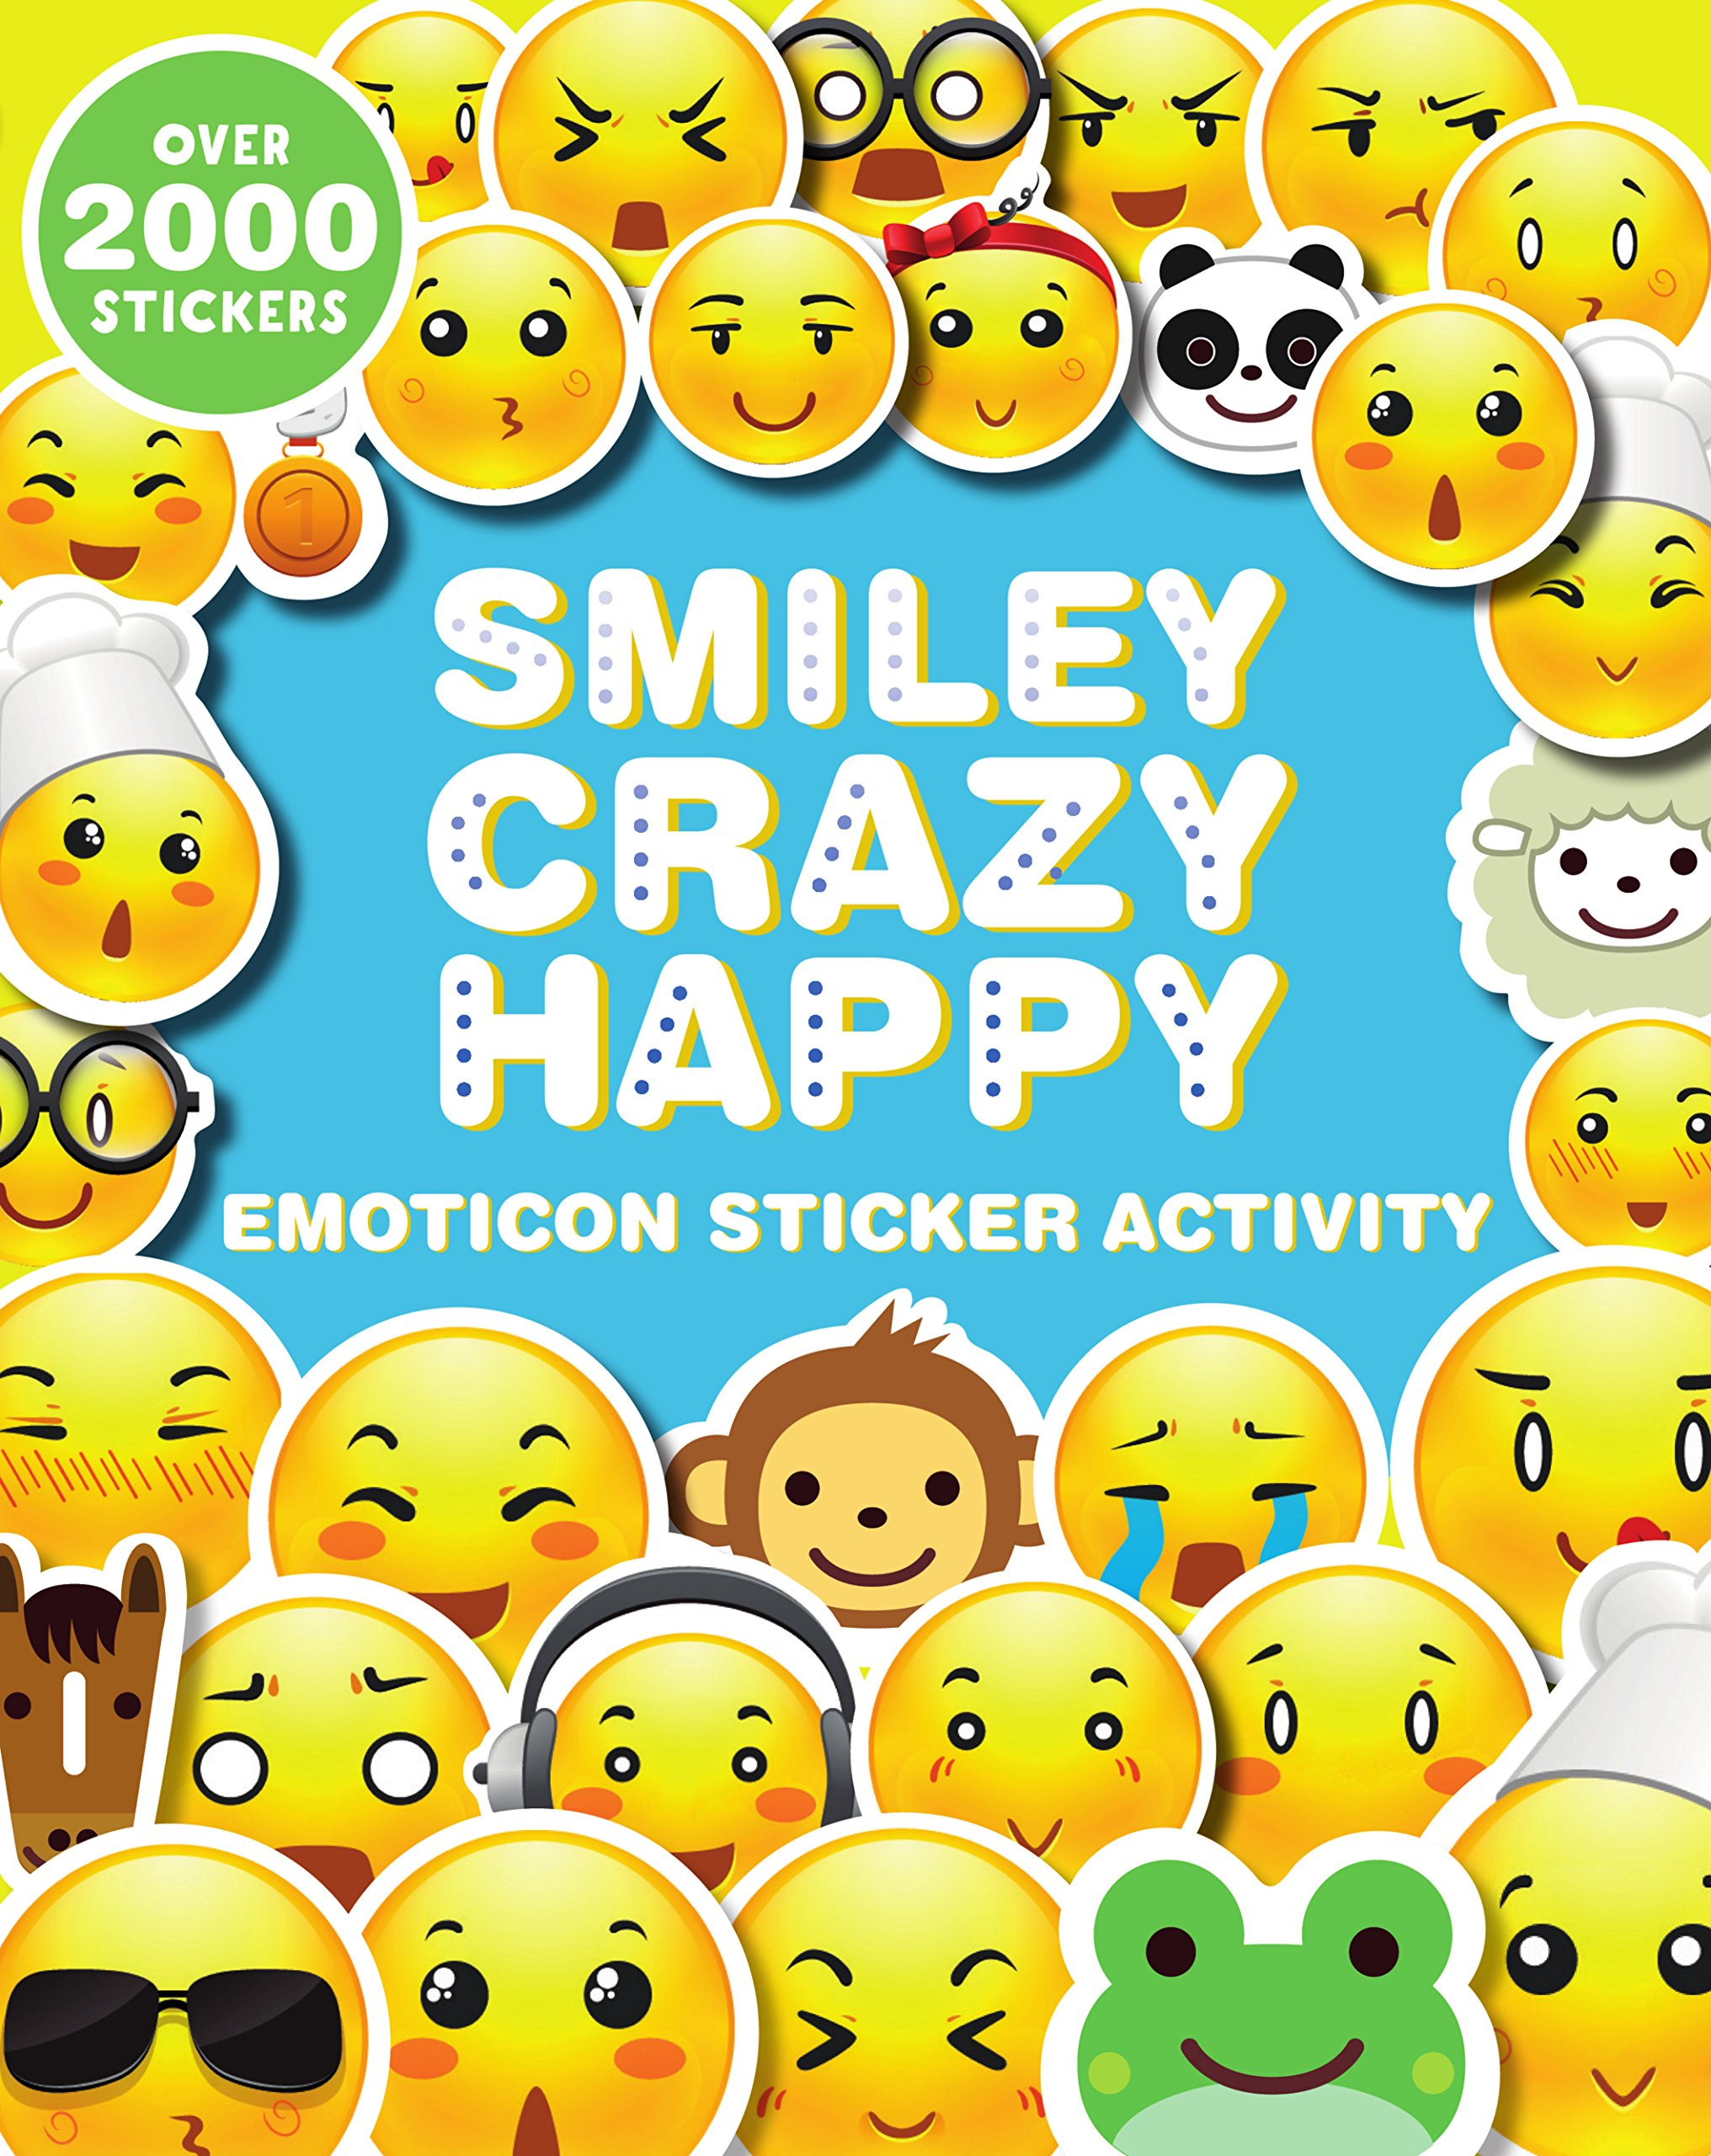 Buy smiley crazy happy emoticon sticker activity 2000 stickers book online at low prices in india